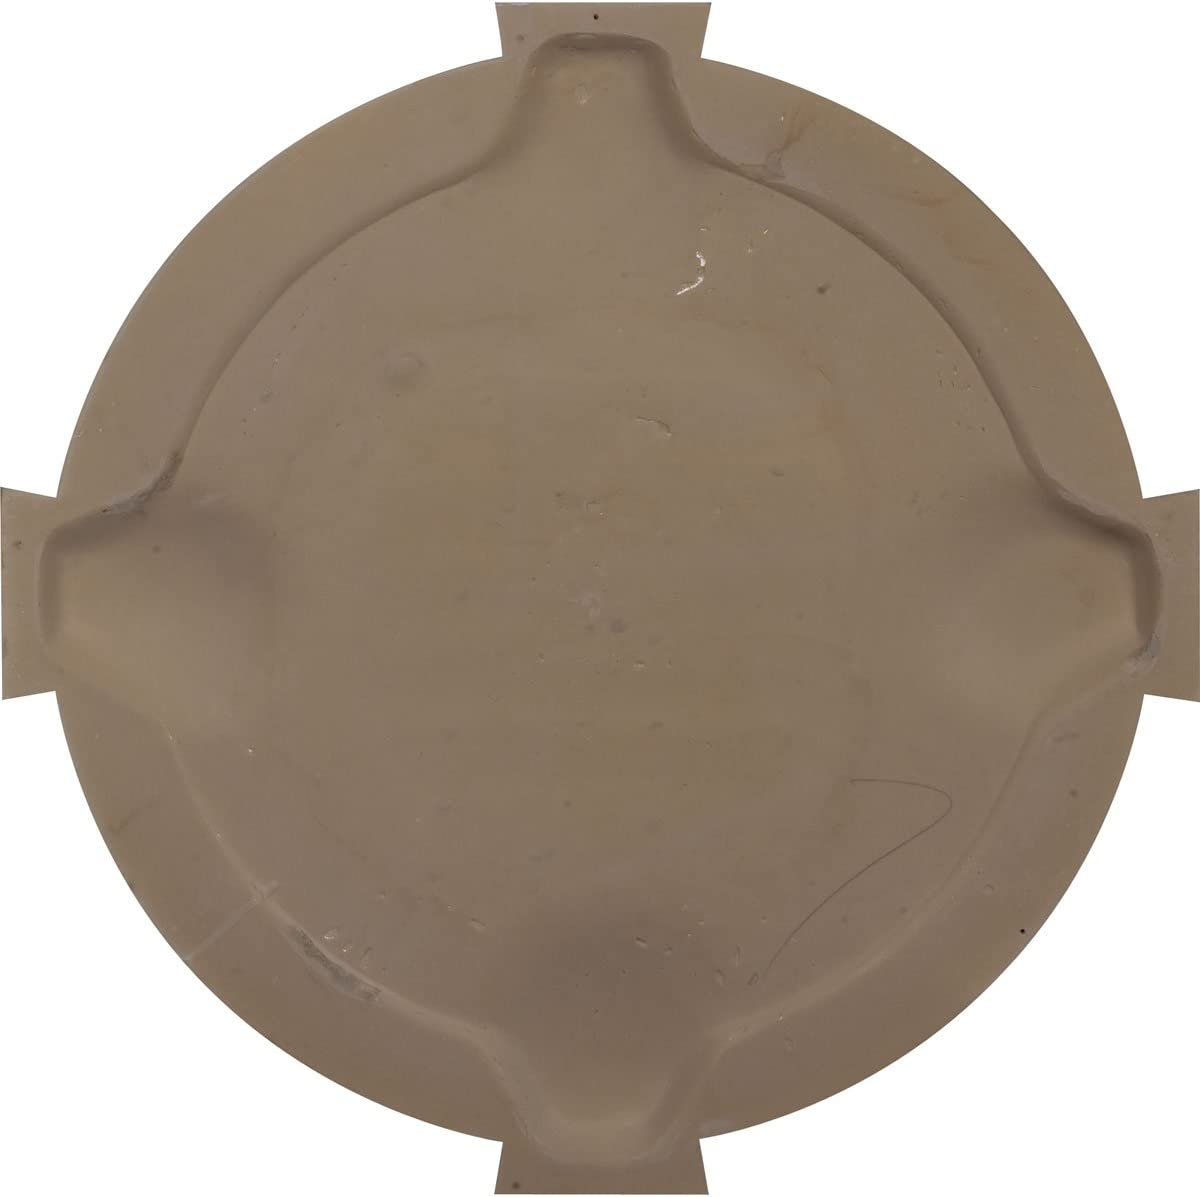 Functional Ekena Millwork GVRO24TFK Round Gable Vent with Keystones Factory Primed White 24W x 24H x 1 1//8P